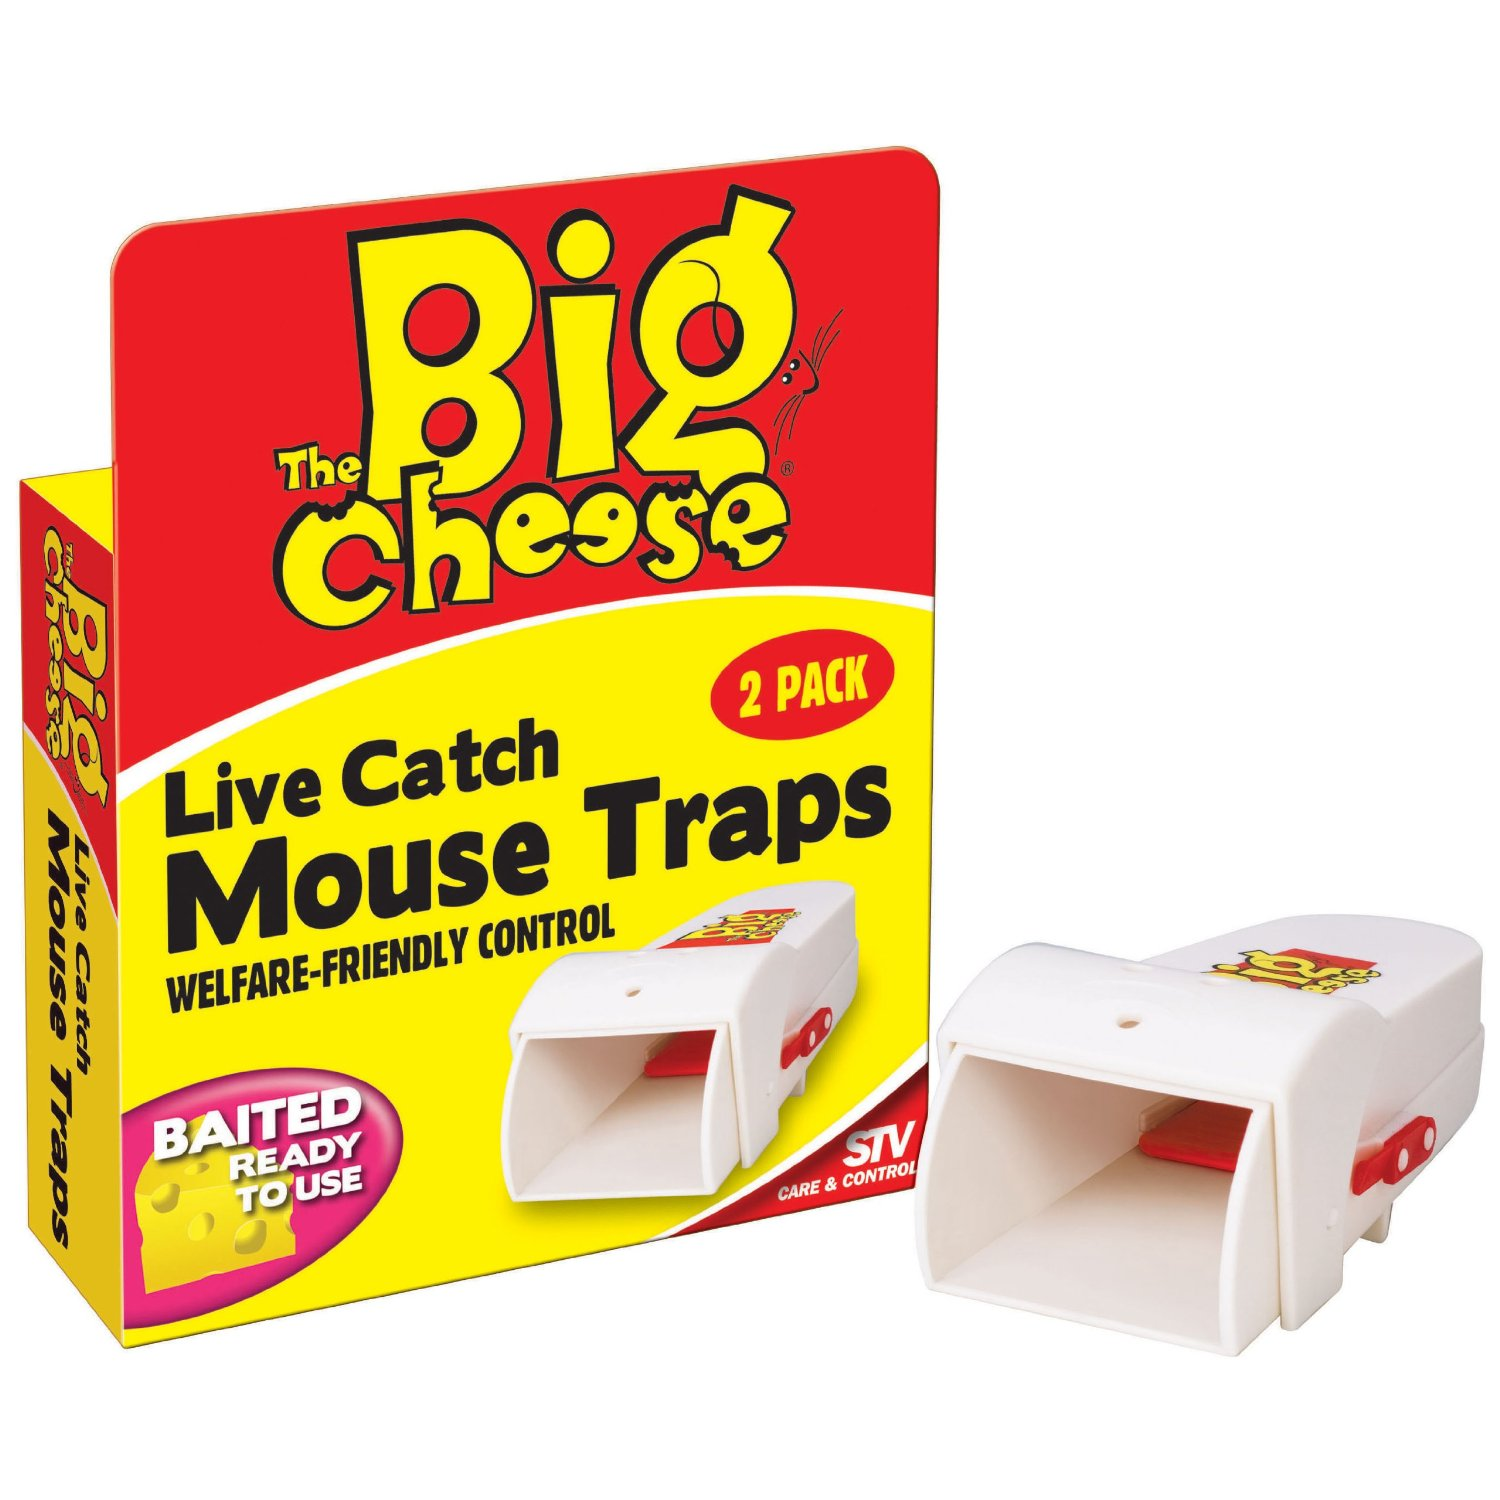 Stv155 Live Catch Mouse Trap Baited Ready To Use 2 PK Humane